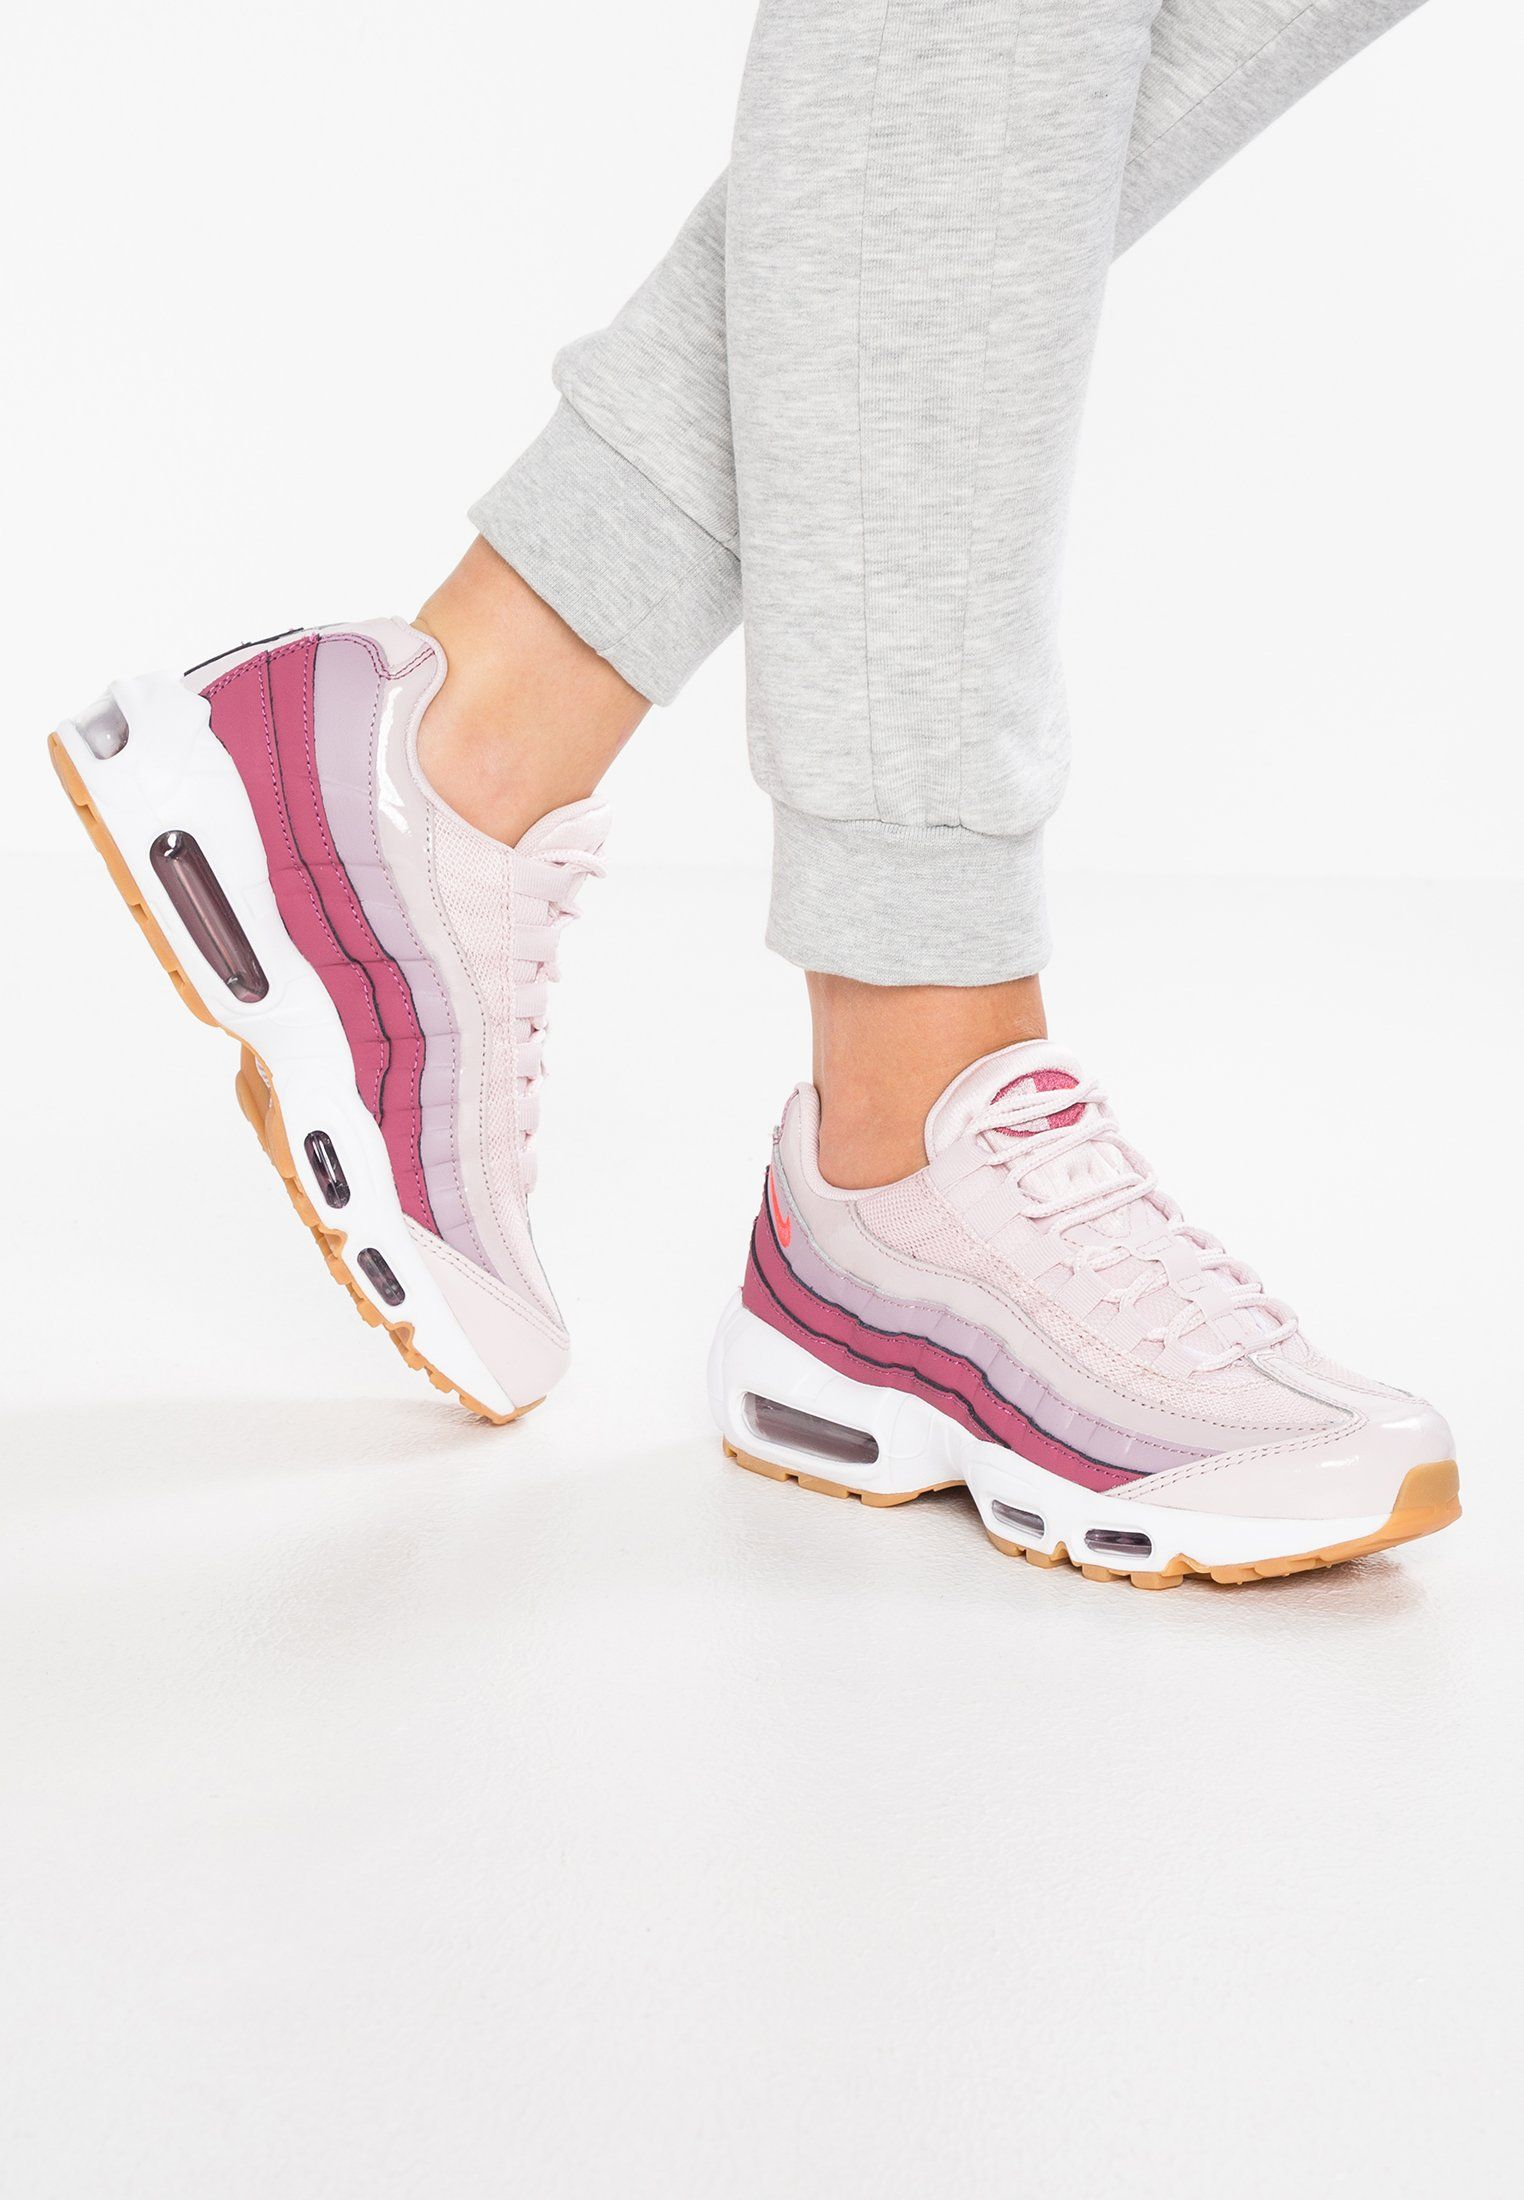 6ad5e3f8162 Nike Sportswear AIR MAX 95 - Baskets basses - barely rose hot punch vintage  wine white elemental rose light brown - ZALANDO.FR